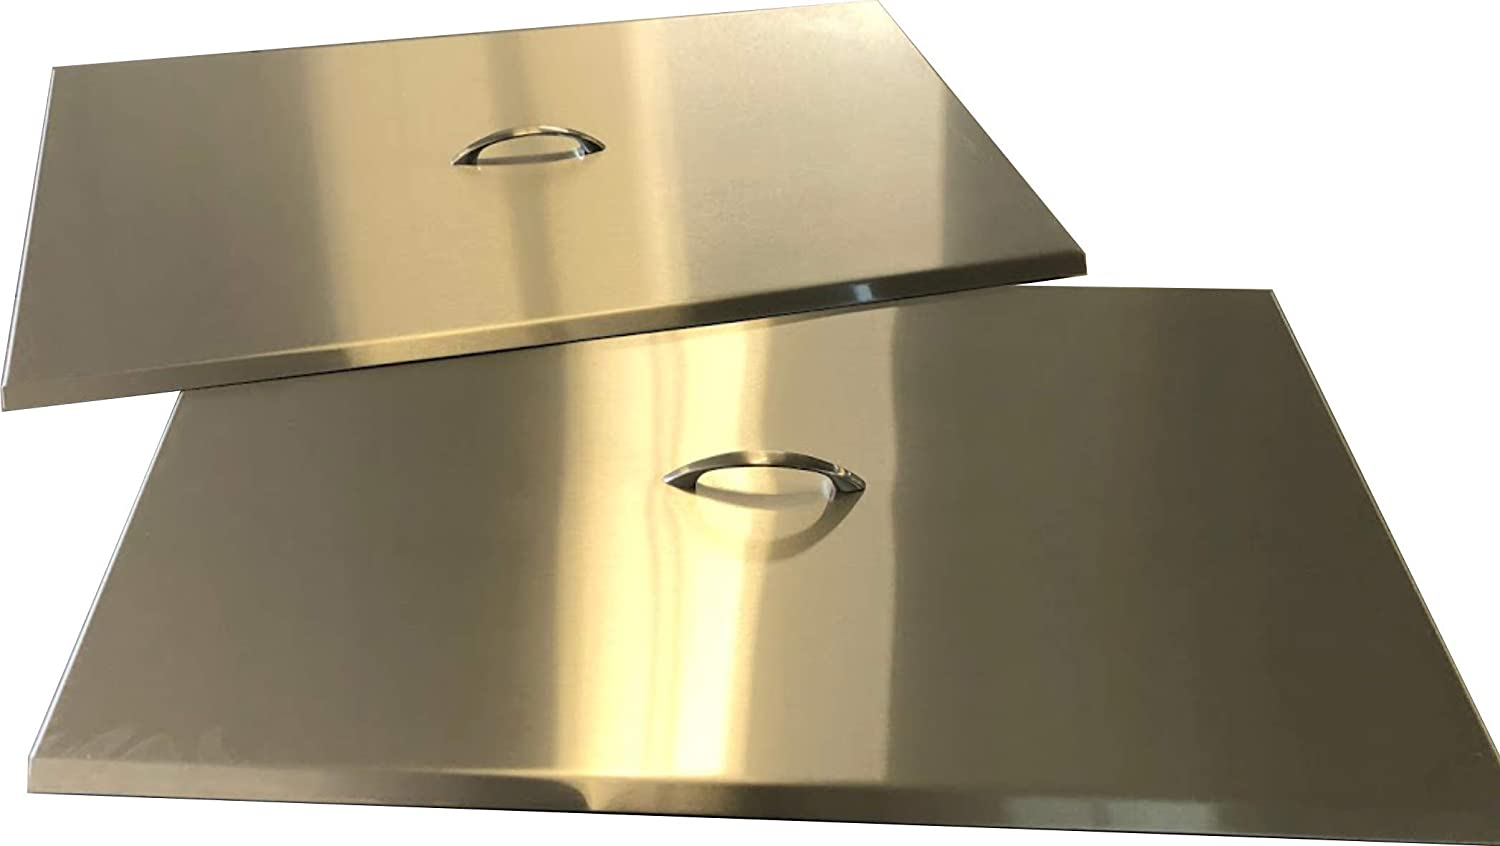 Commercial Fryer Cover (Take Measurements Before Buying) Stainless Steel